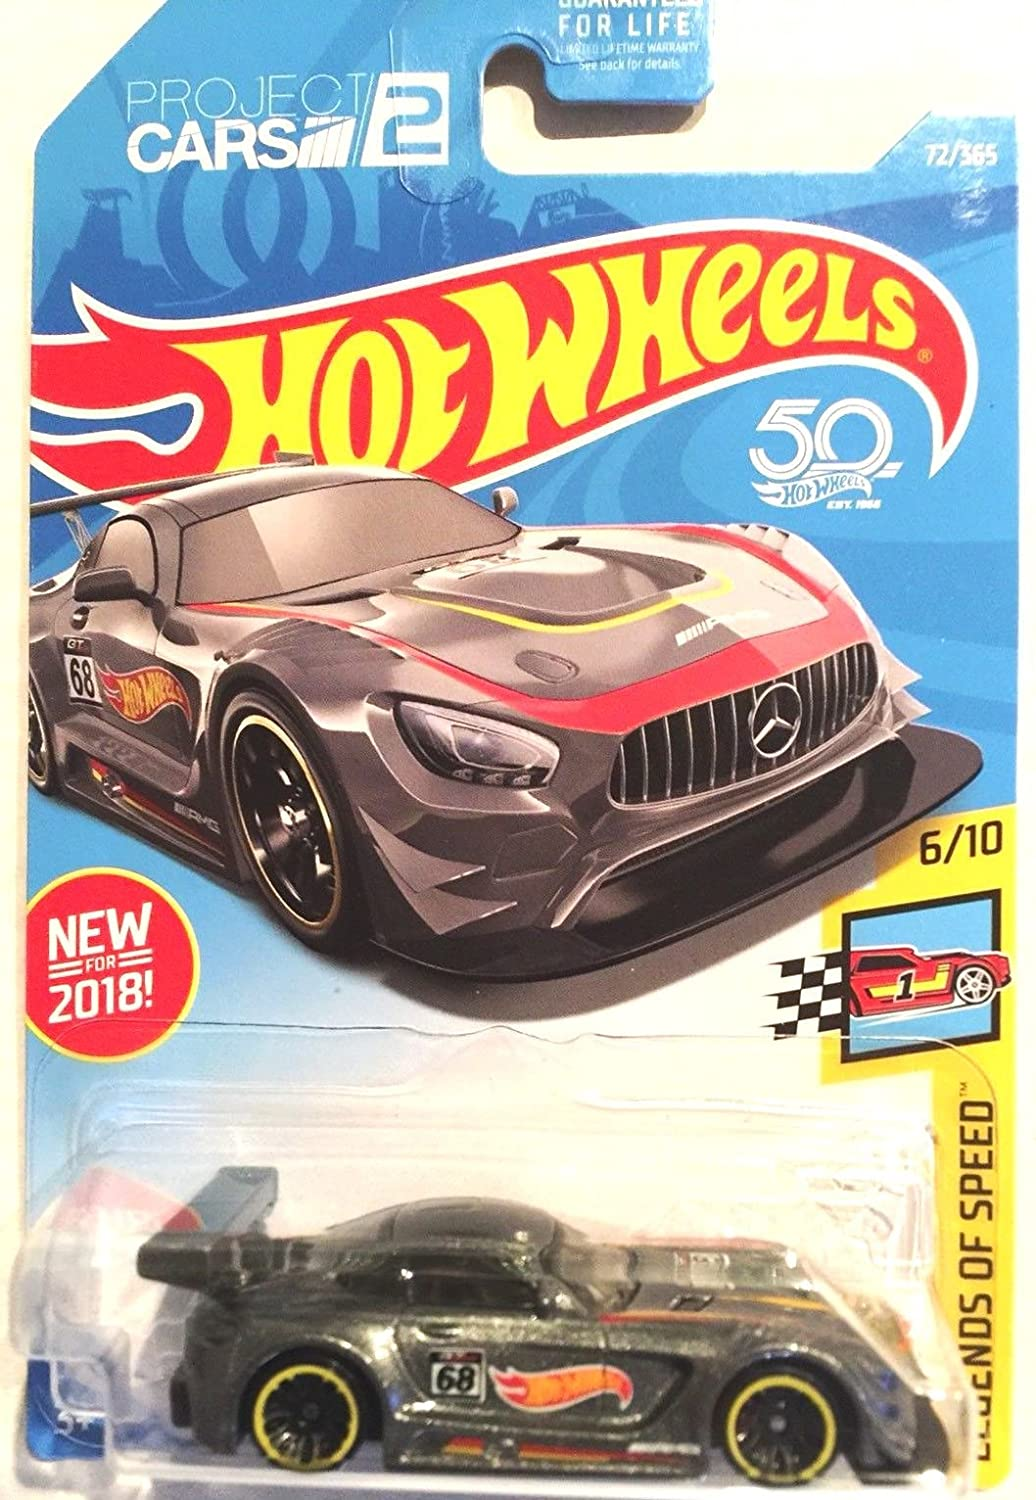 Hot Wheels 2018 50th Anniversary Legends of Speed '16 Mercedes AMG GT3 72/365, Gray